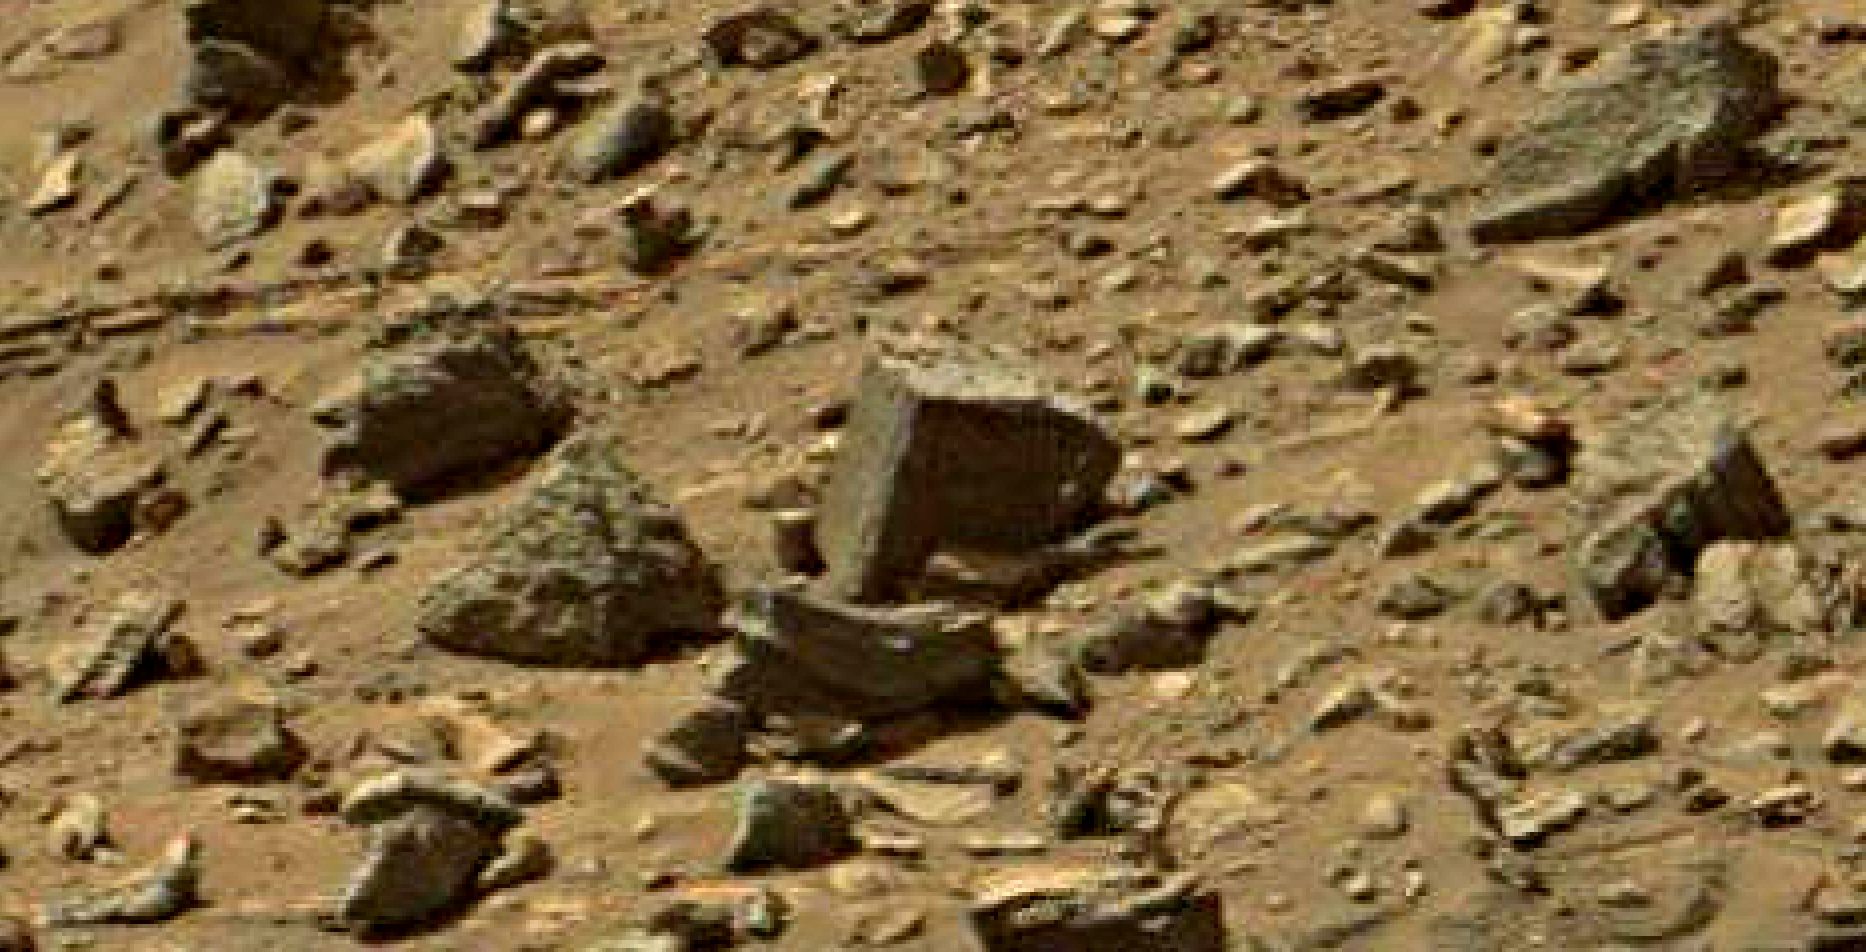 mars sol 1429 anomaly artifacts 1 was life on mars